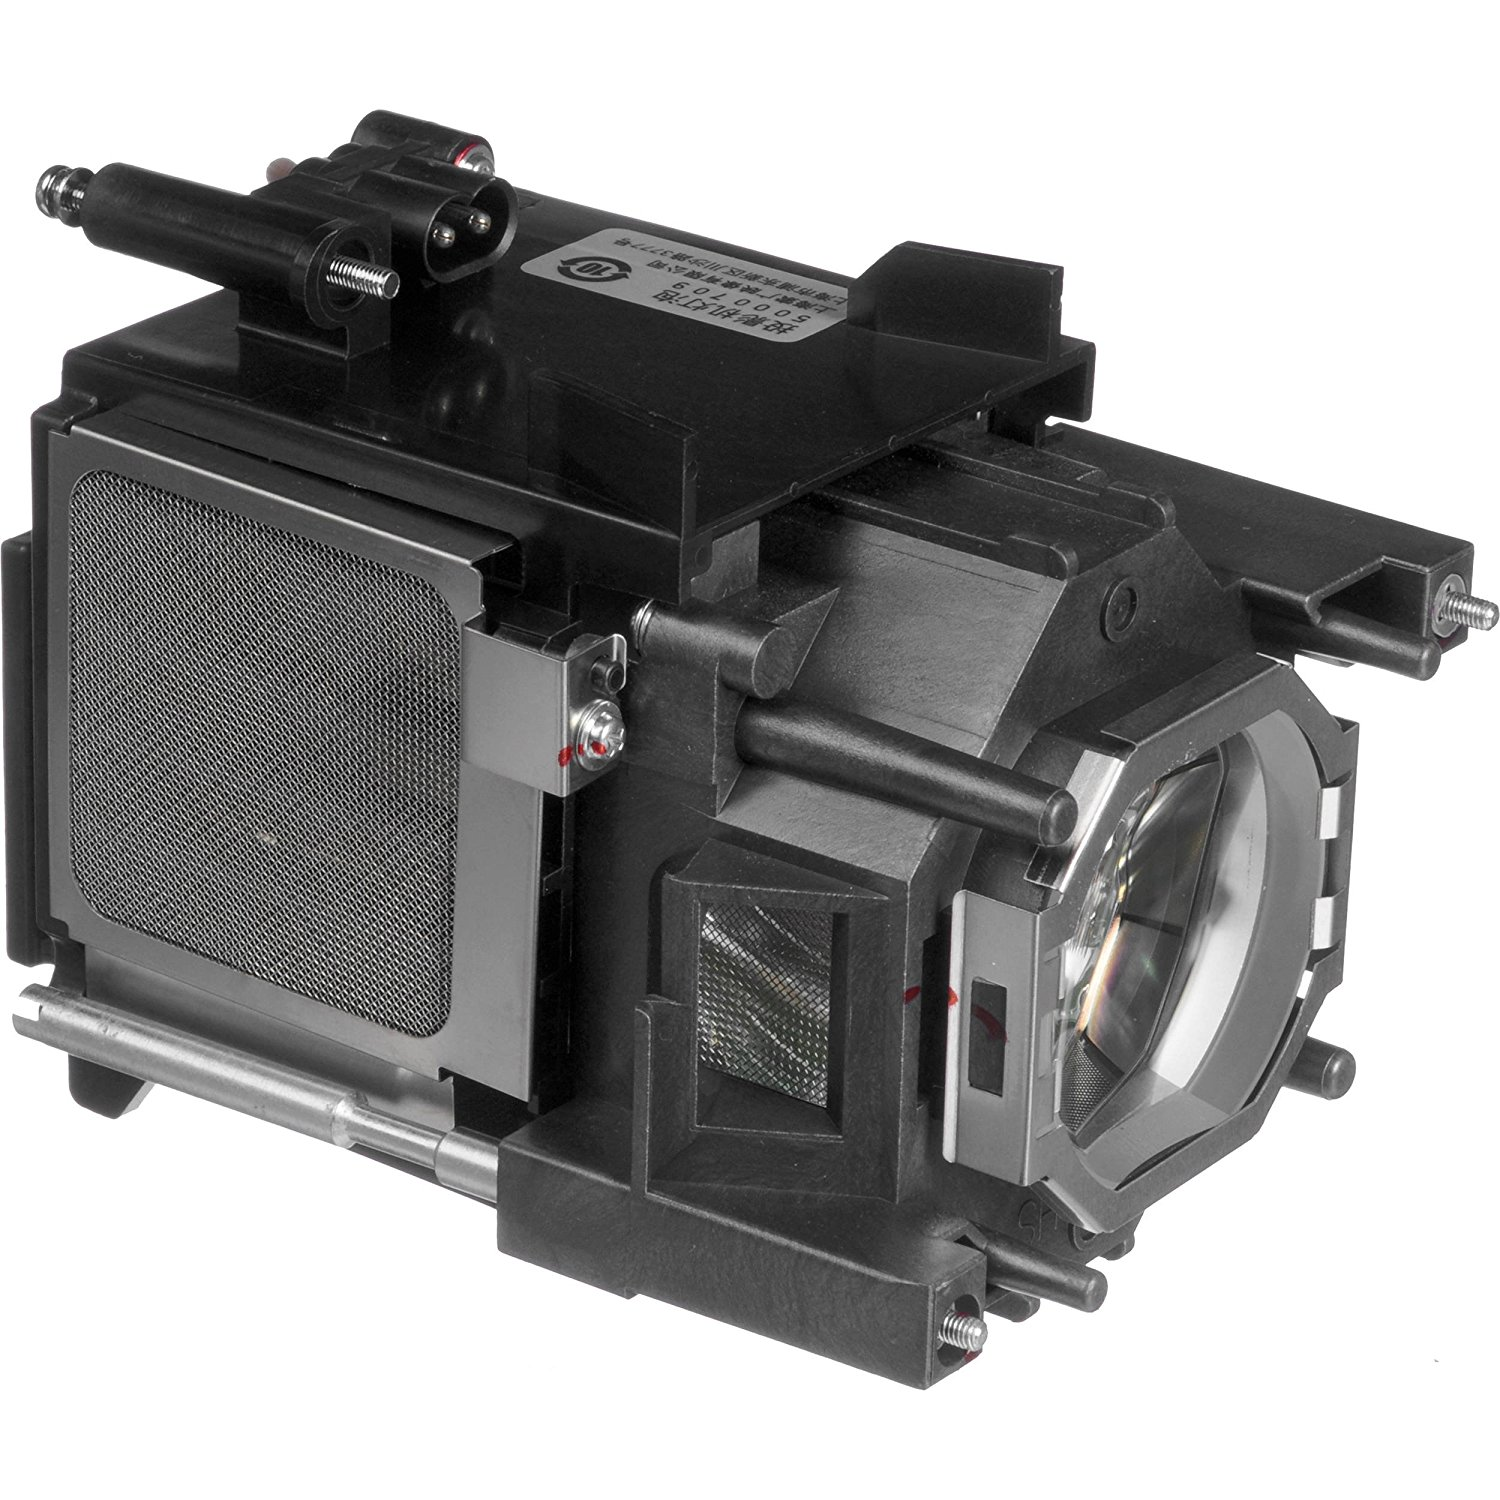 LMP-F331 Replacement Projector Lamp with Housing for SONY VPL-FH31 VPL-FH35 VPL-FH36 VPL-FX37 VPL-F500H lmp f331 replacement projector bare lamp for sony vpl fh31 vpl fh35 vpl fh36 vpl fx37 vpl f500h